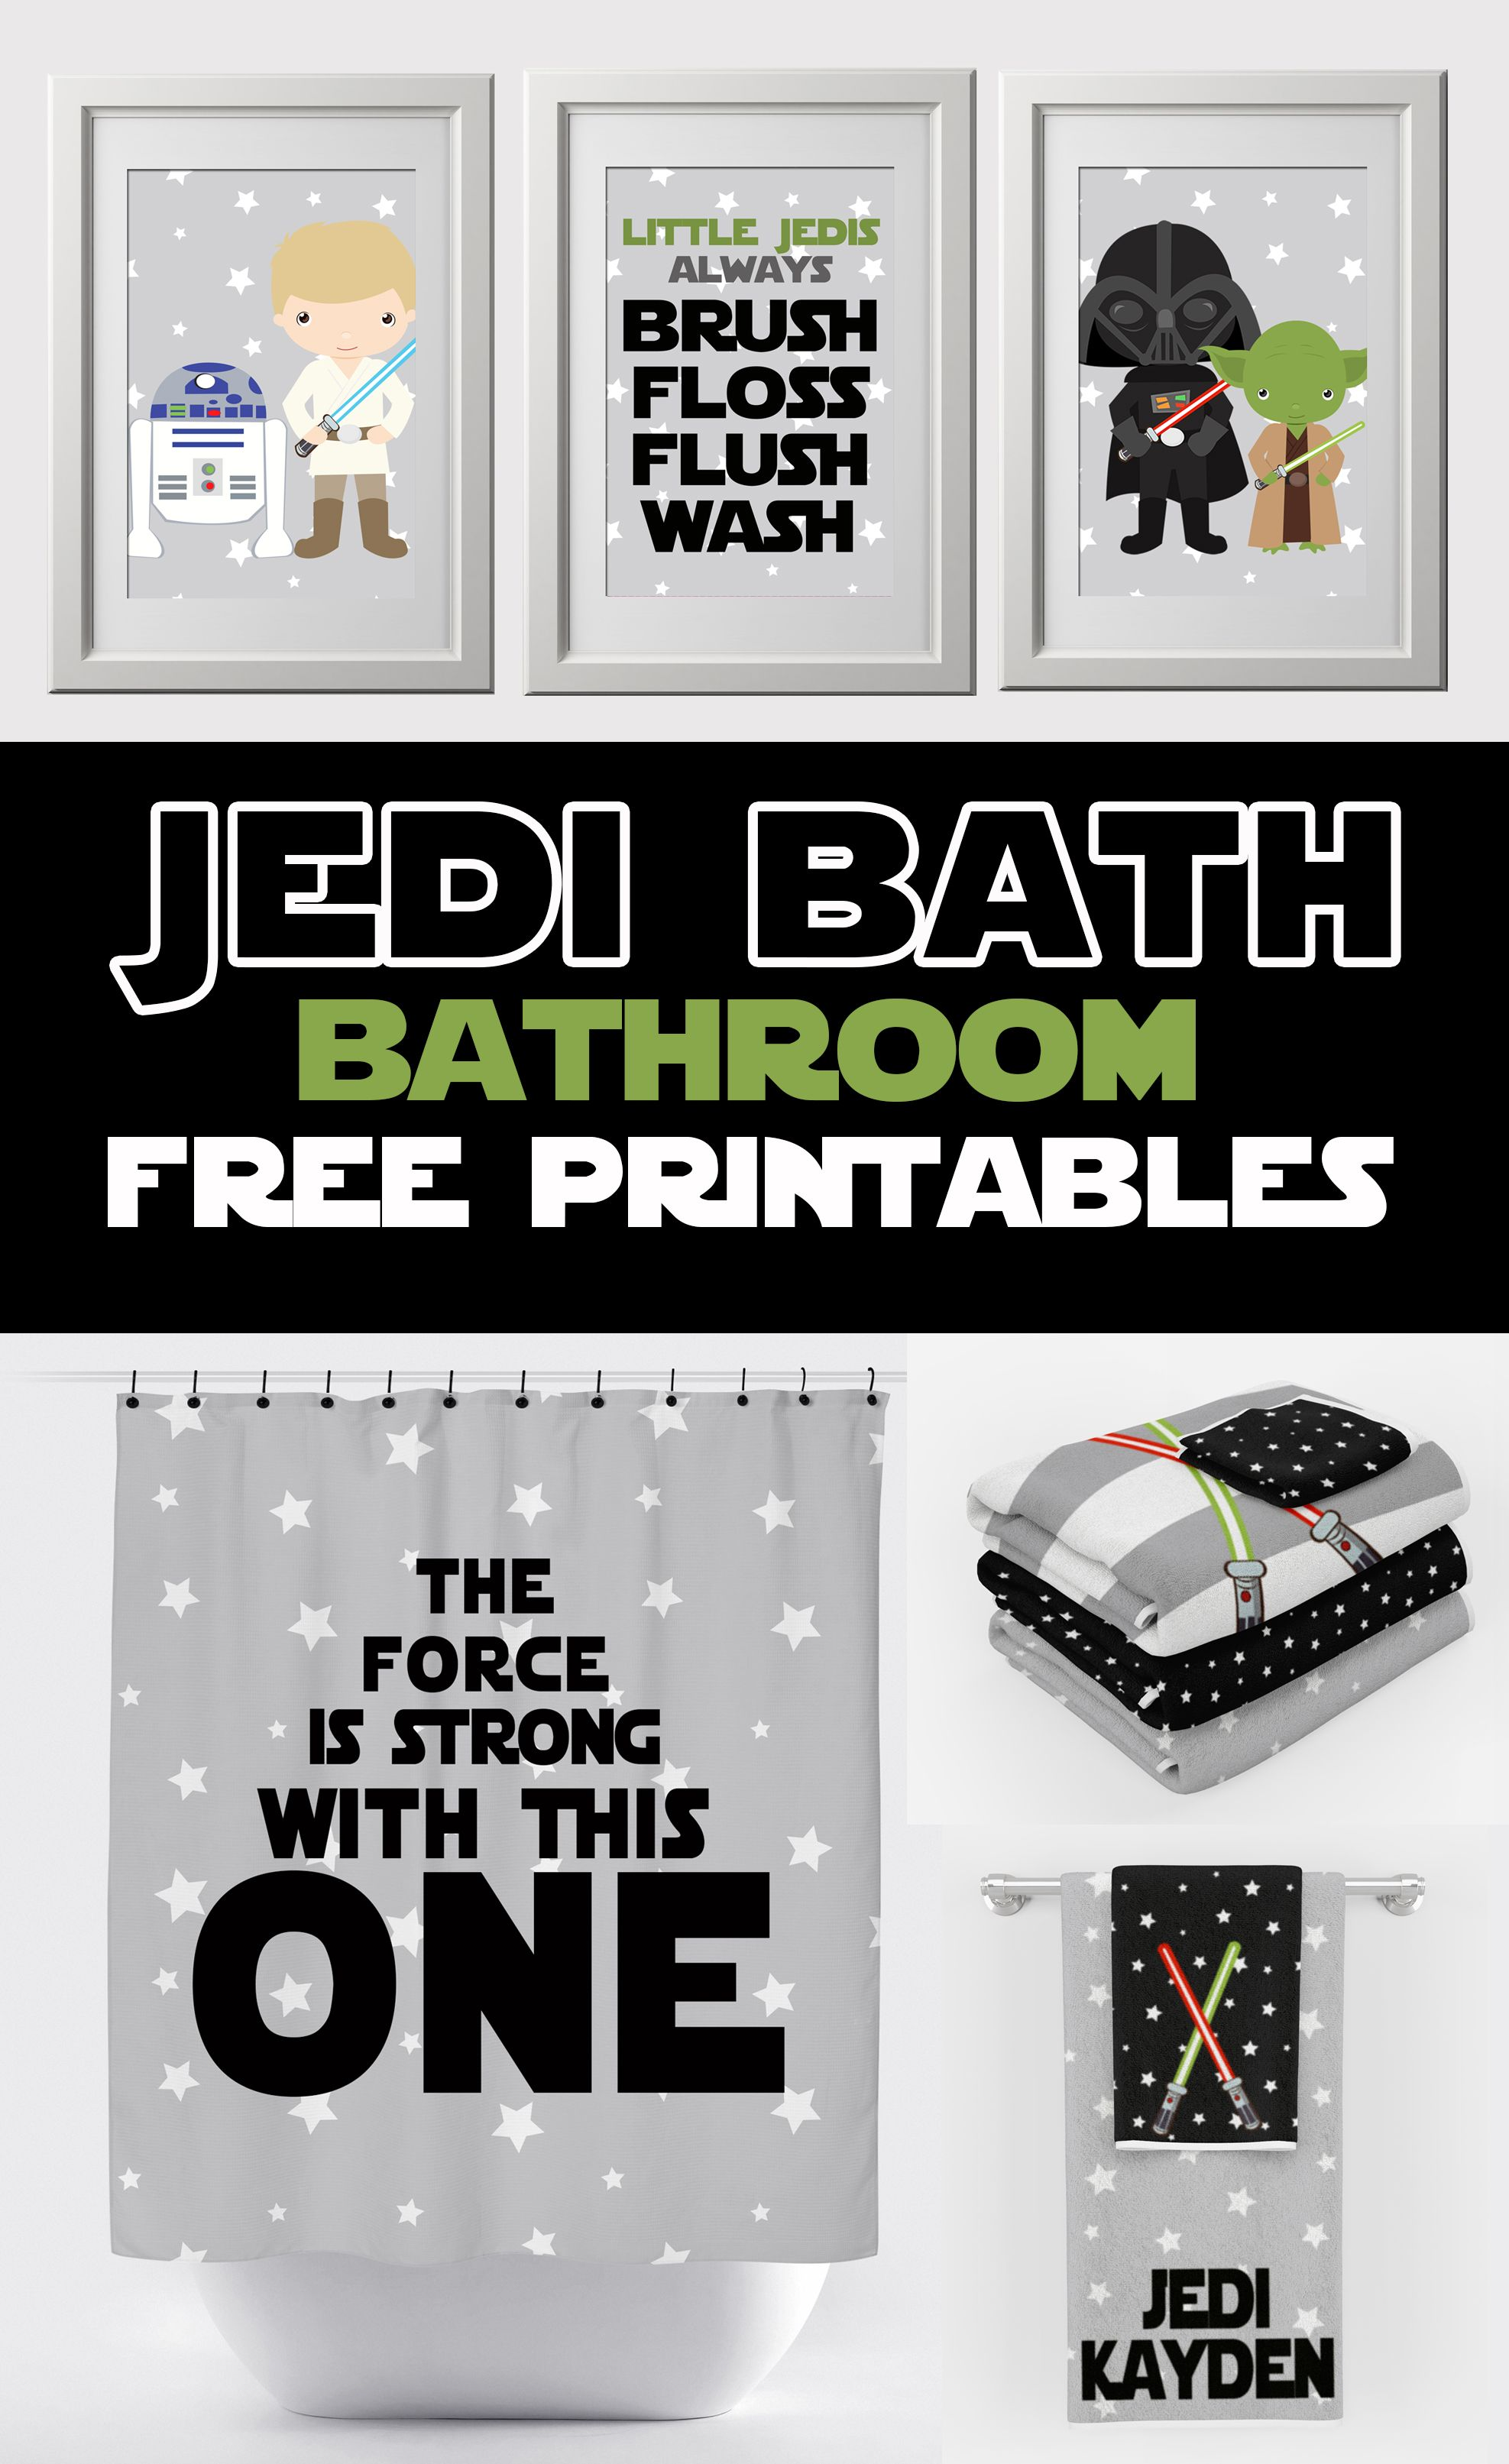 The Force Is Strong With This Bathroom Cute Star Wars Free